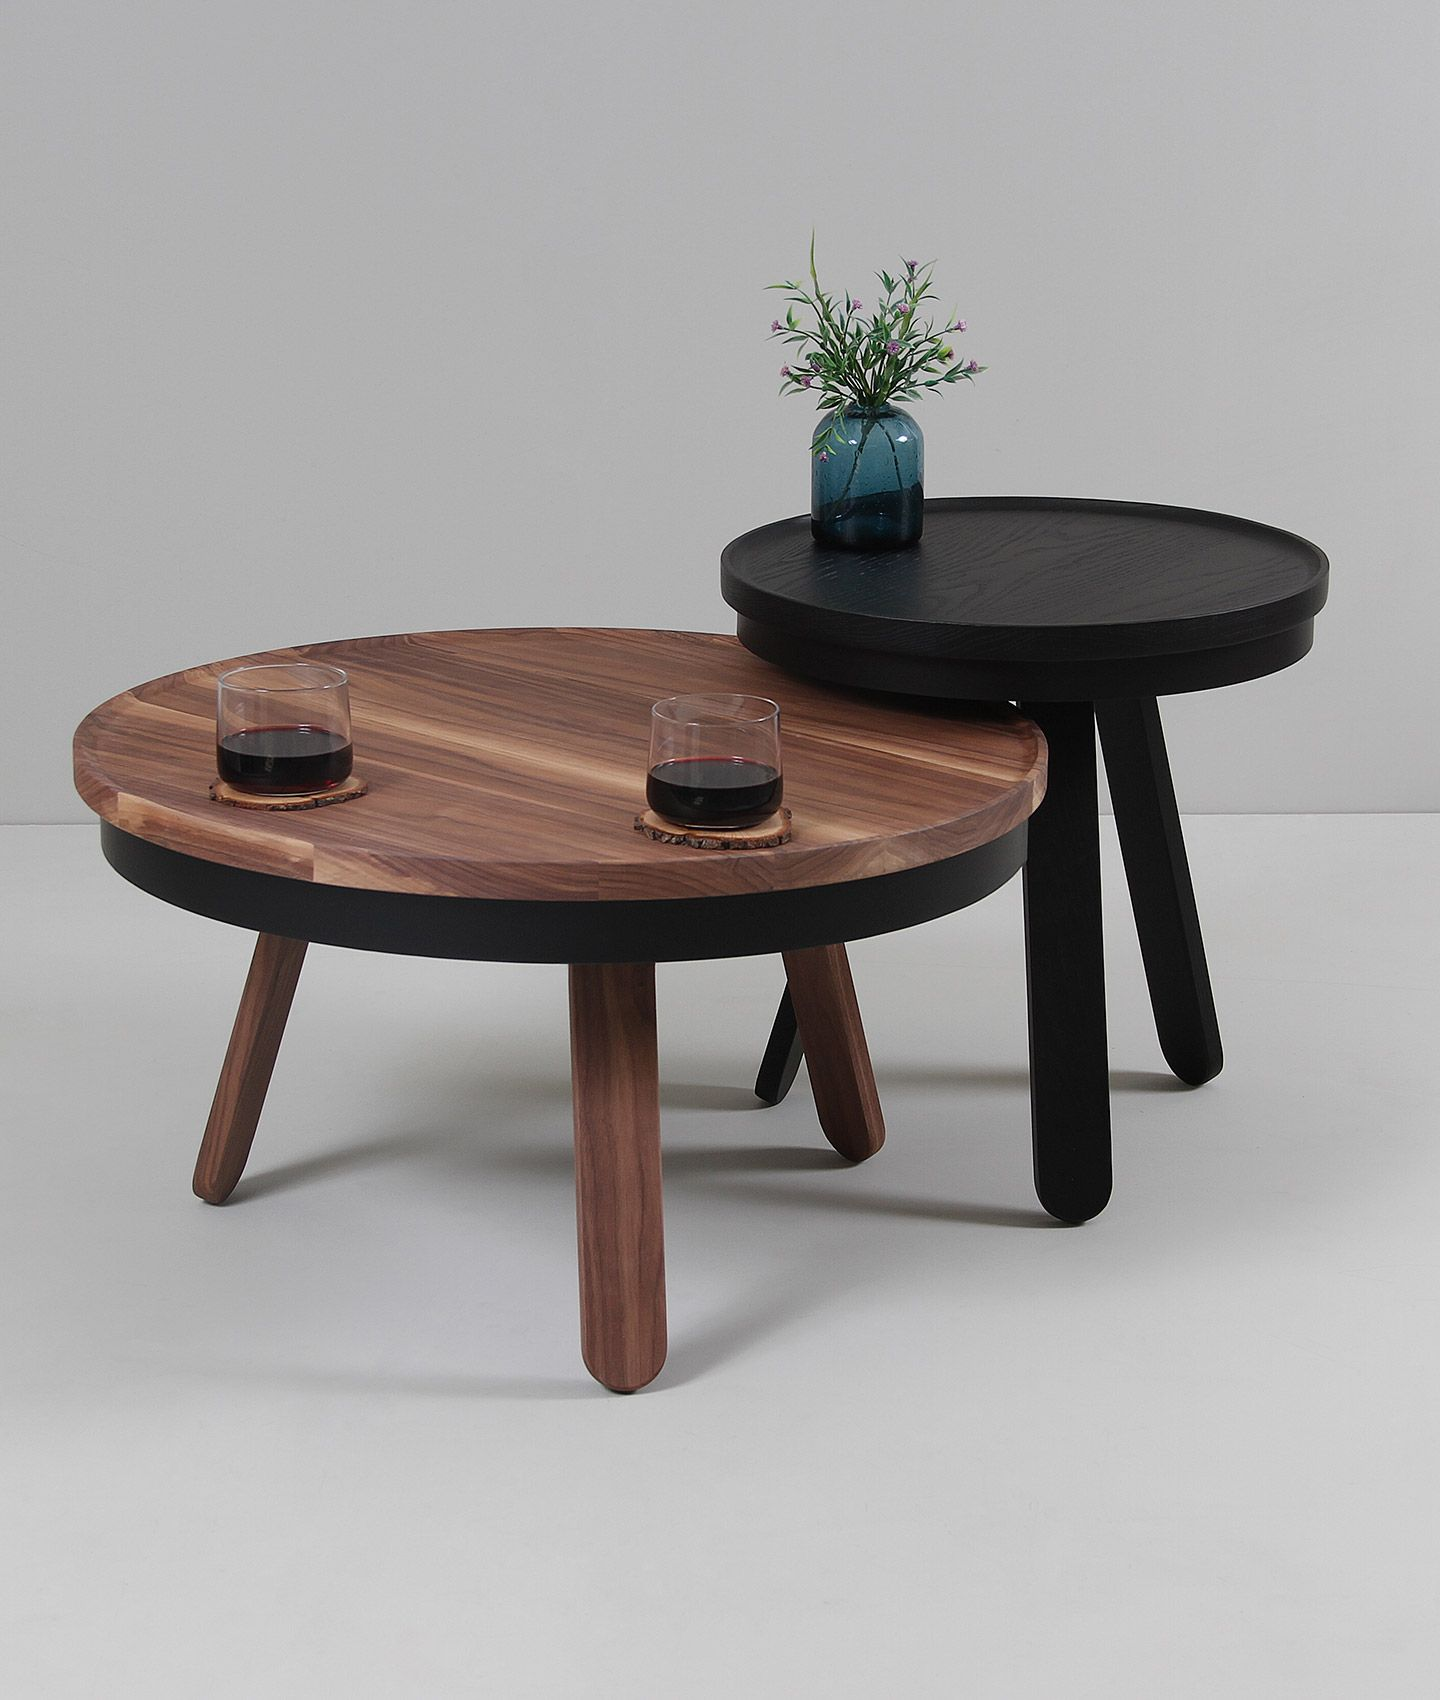 Medium Batea Table Storage Side Table Furniture Woodendot Coffee Table Small Tray Table Coffee Table With Storage [ 1700 x 1440 Pixel ]